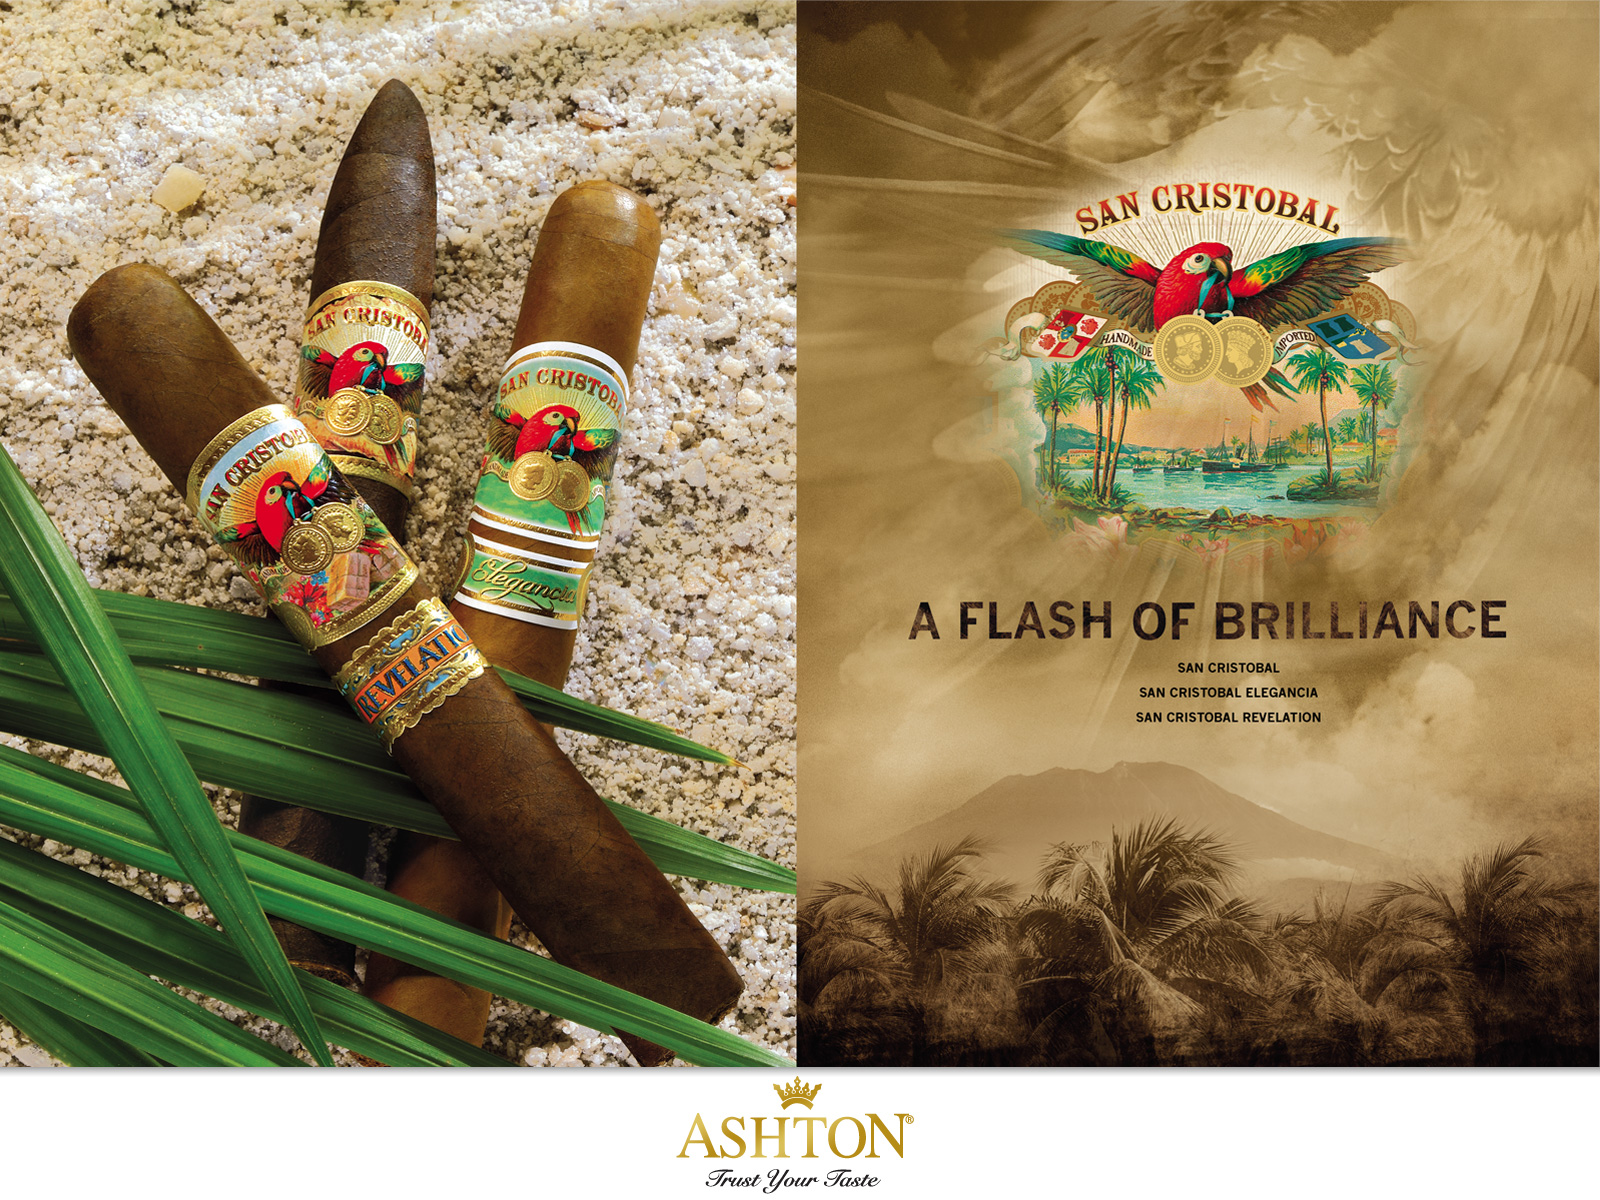 ashton_cigars_advertising_campaign_cigarmonkeys_6.jpg